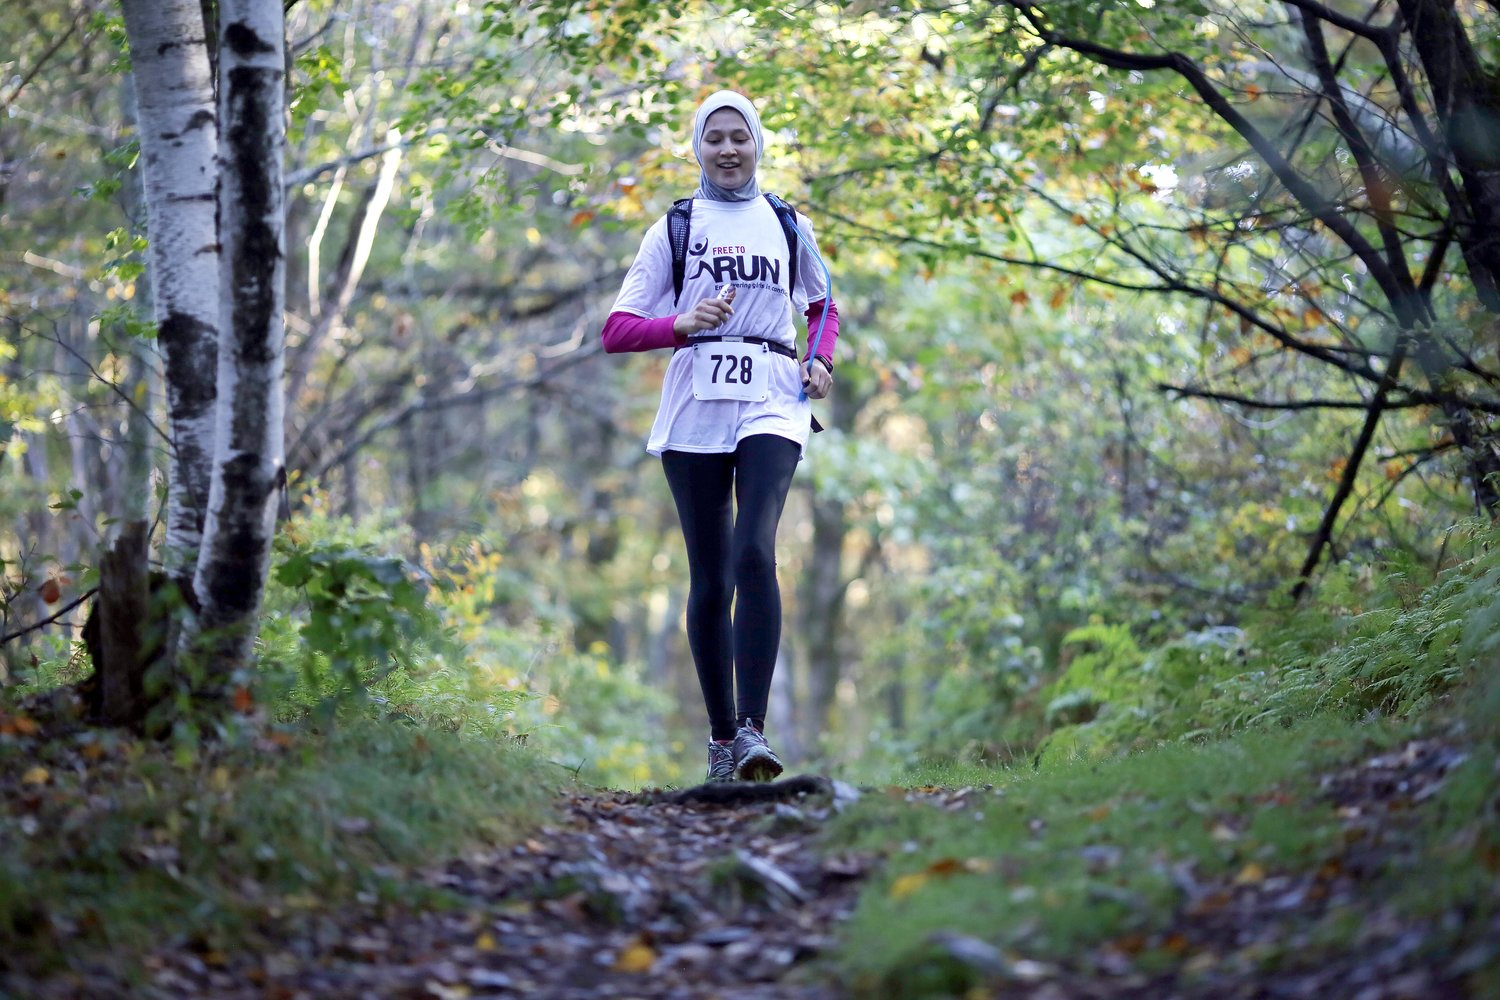 Farahnaz on course. Photo credit Berkshire Eagle.